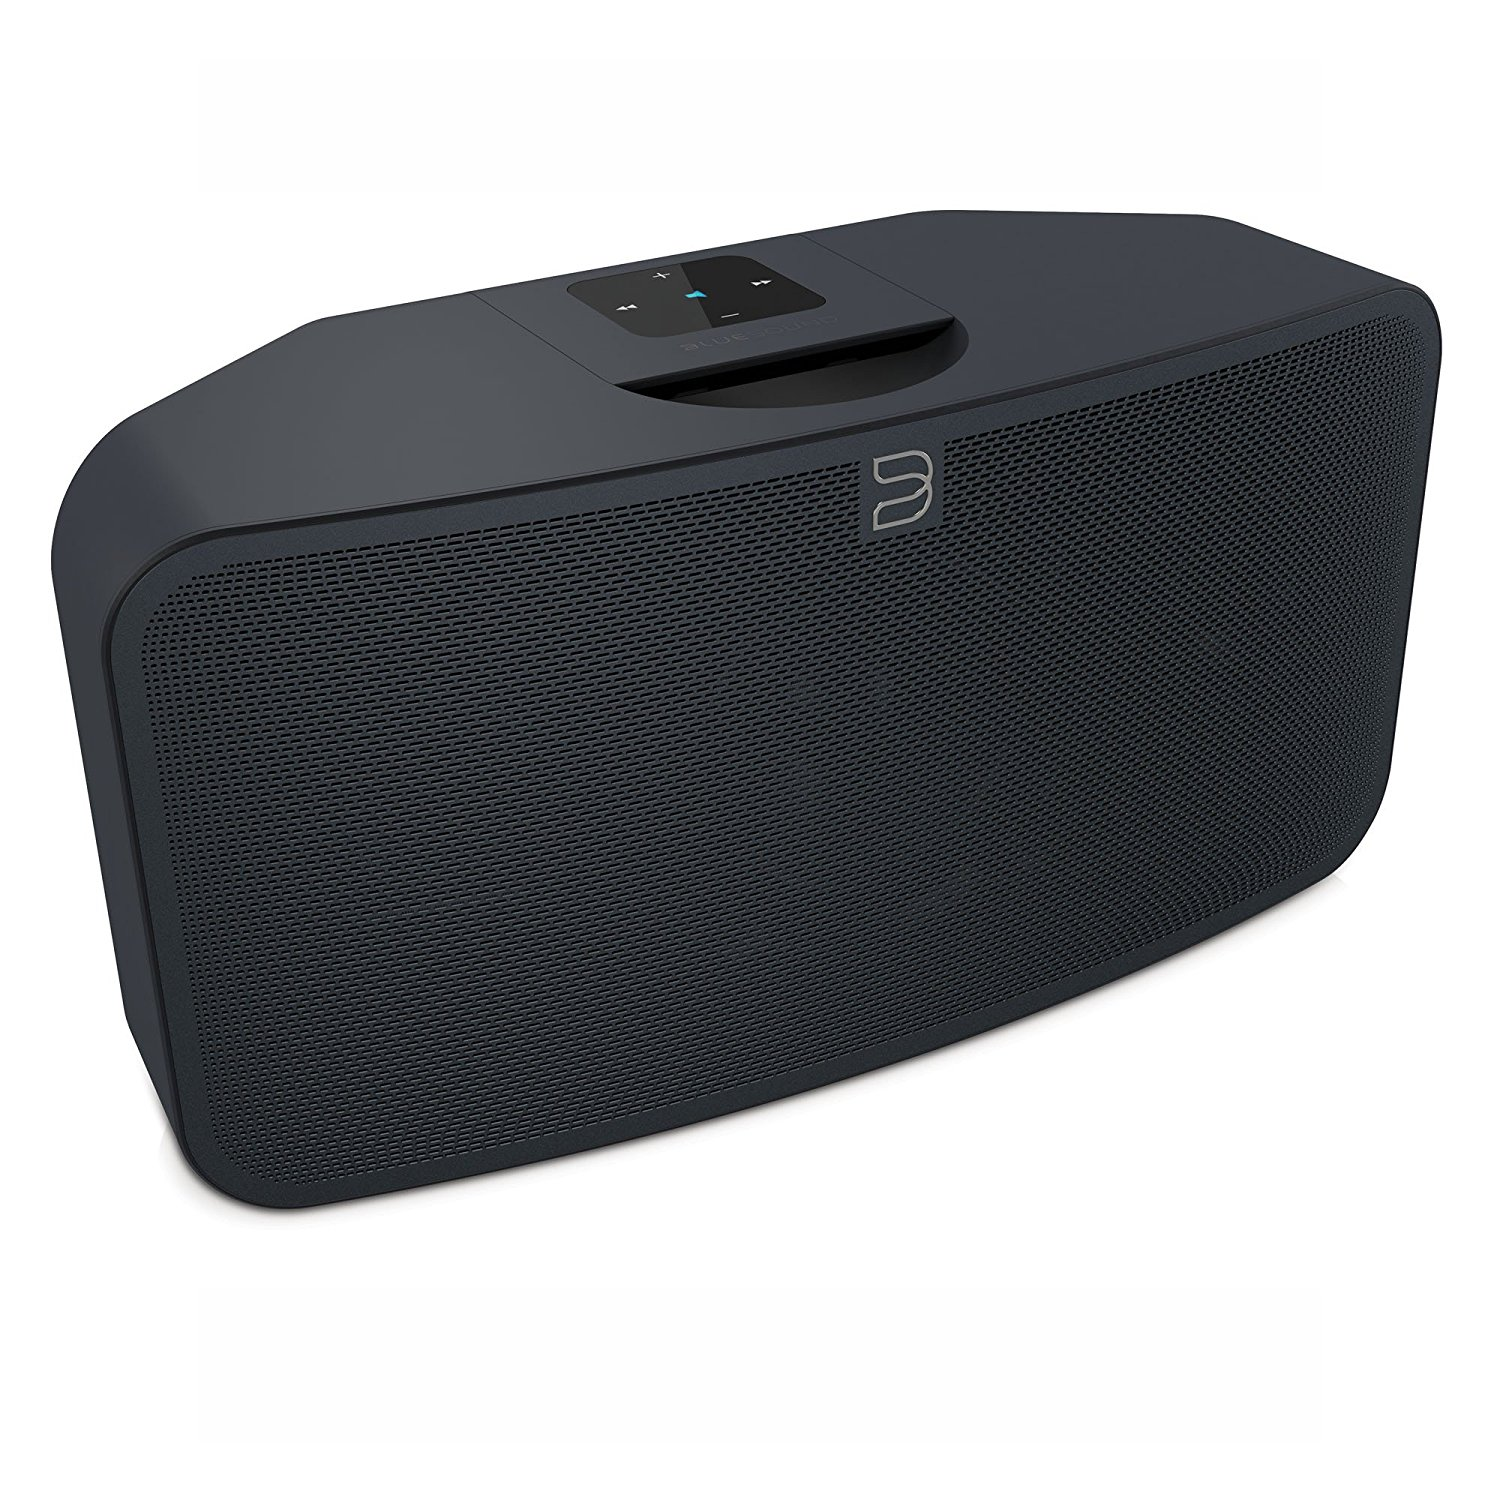 Bluesound PULSE MINI Compact Wireless Multi-room Smart Speaker with Bluetooth - Black